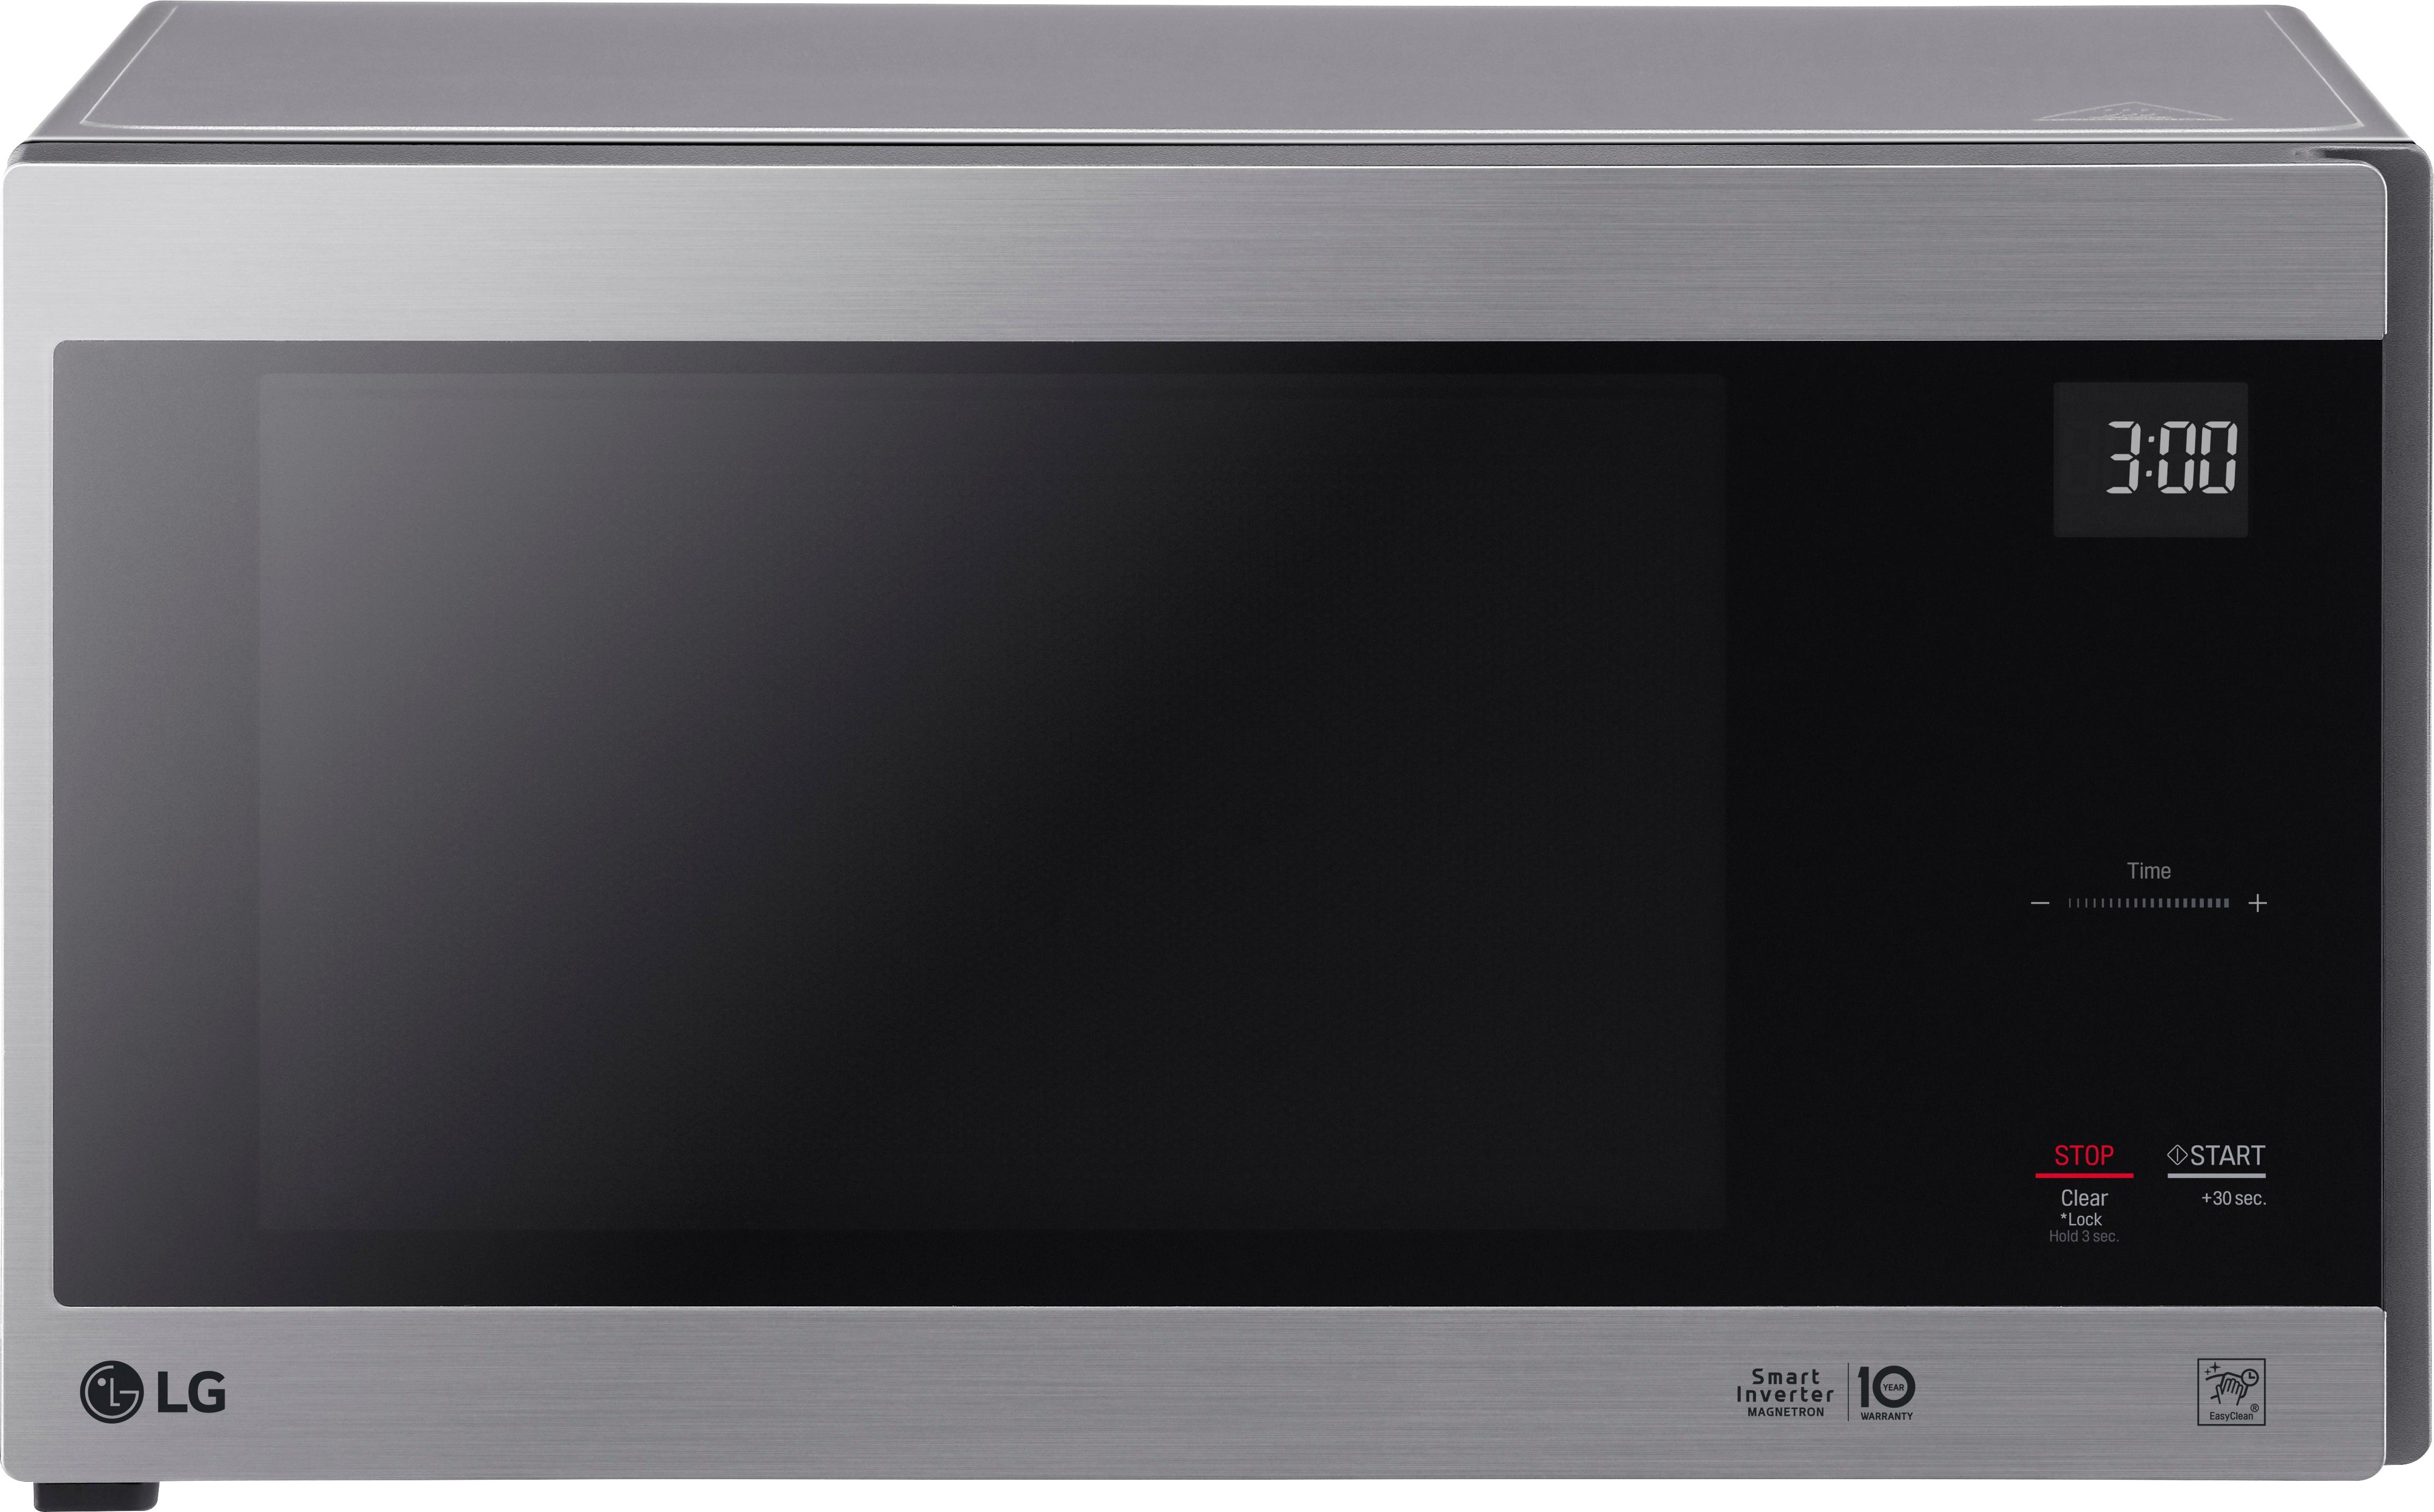 lg neochef 1 5 cu ft mid size microwave stainless steel